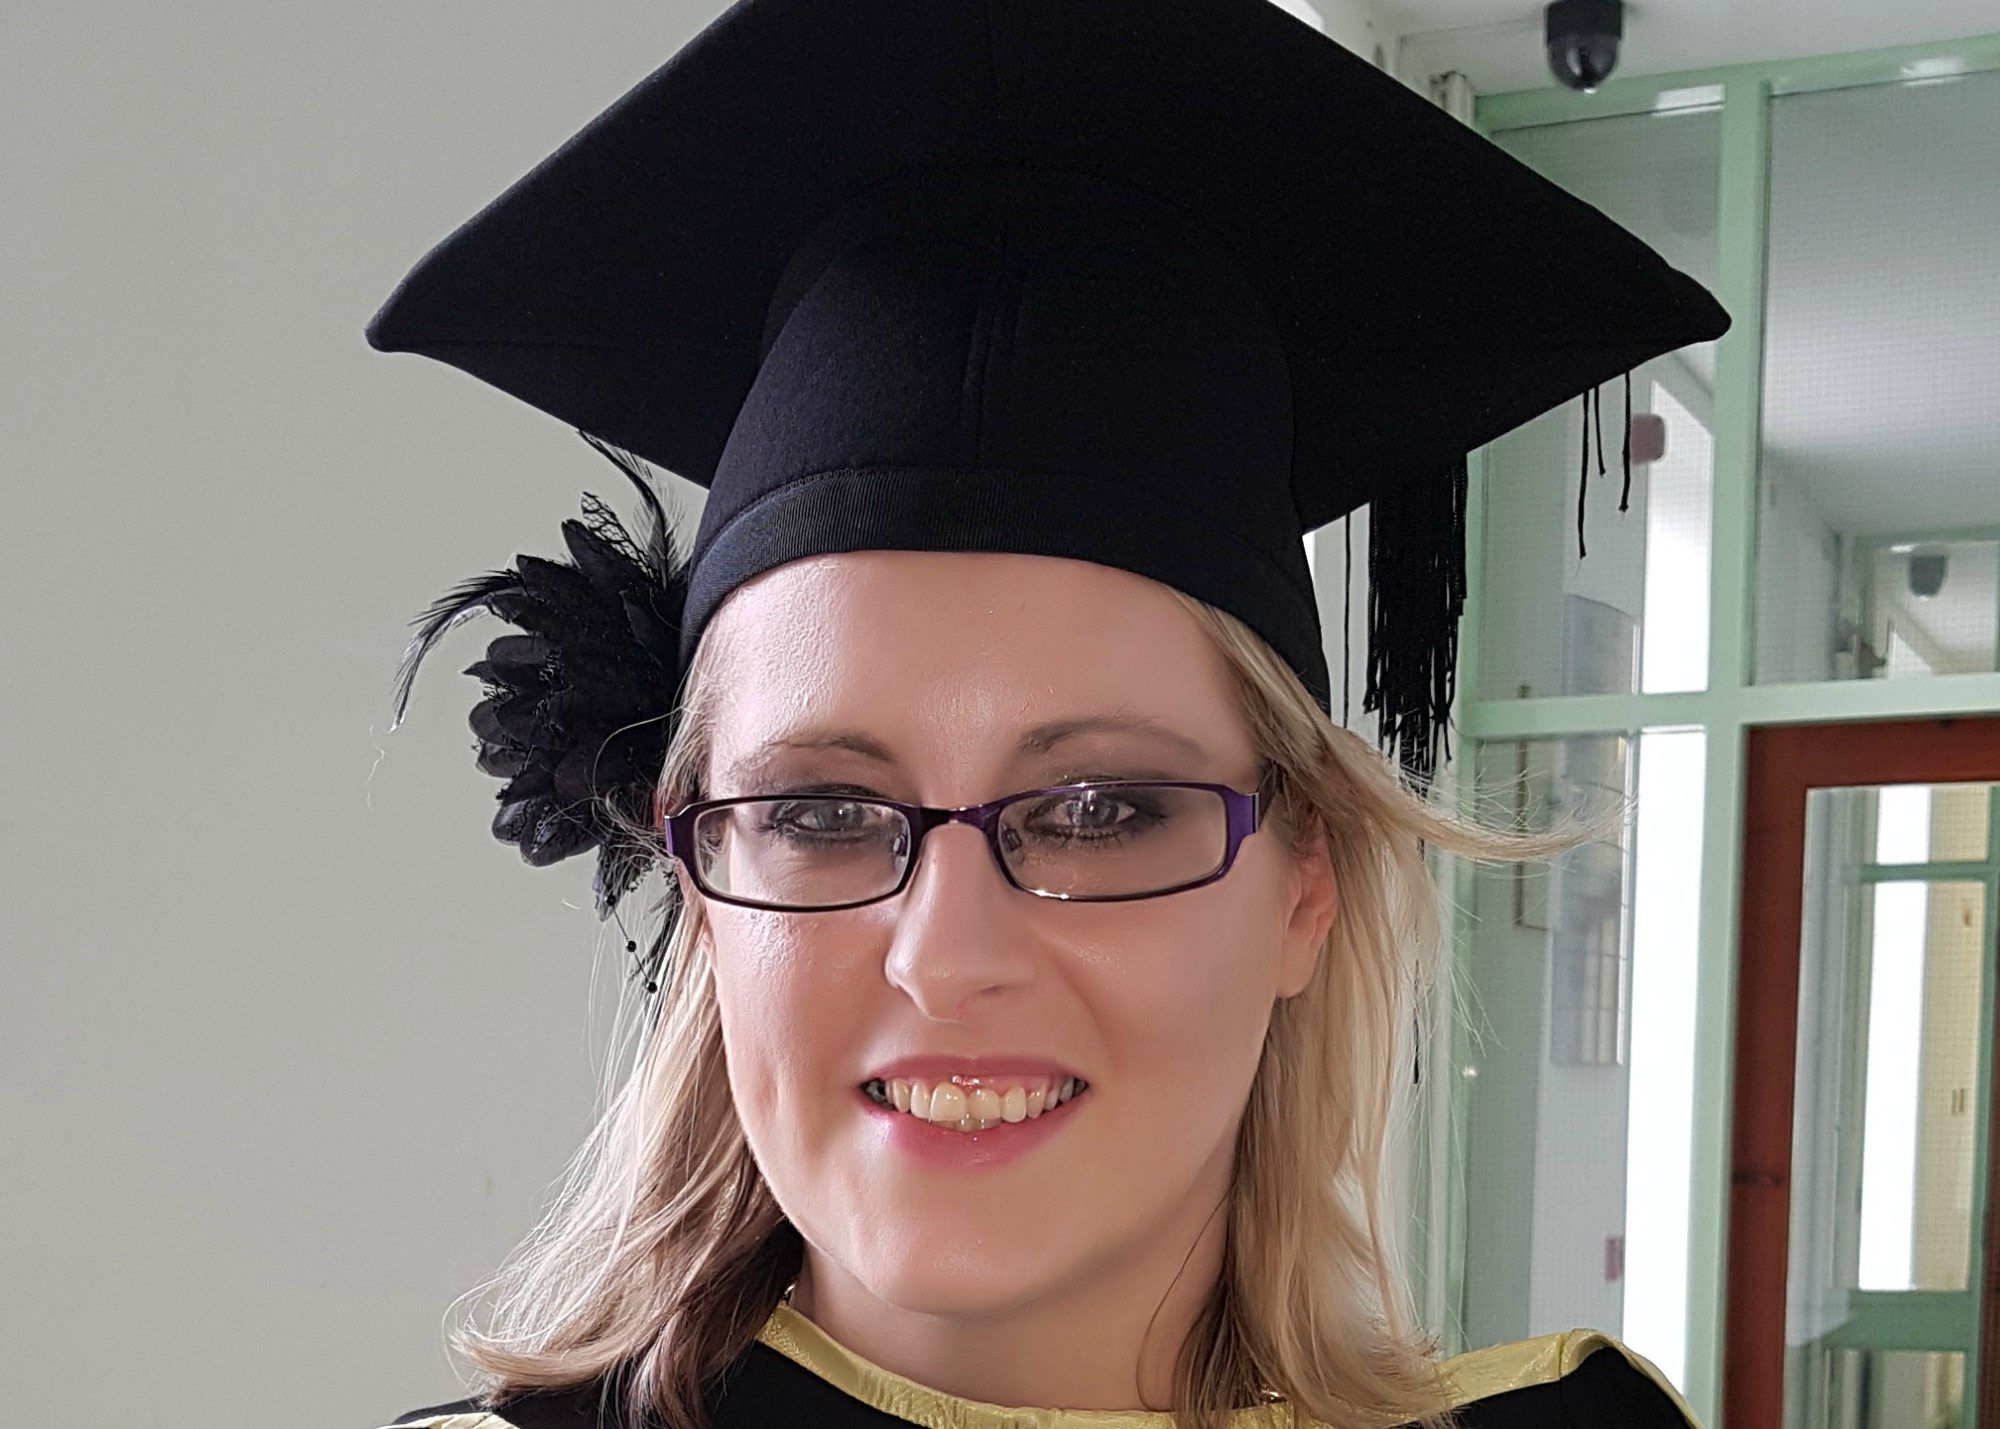 Pictured is Aisling O'Driscoll who gained employment in a solicitor's office upon graduation